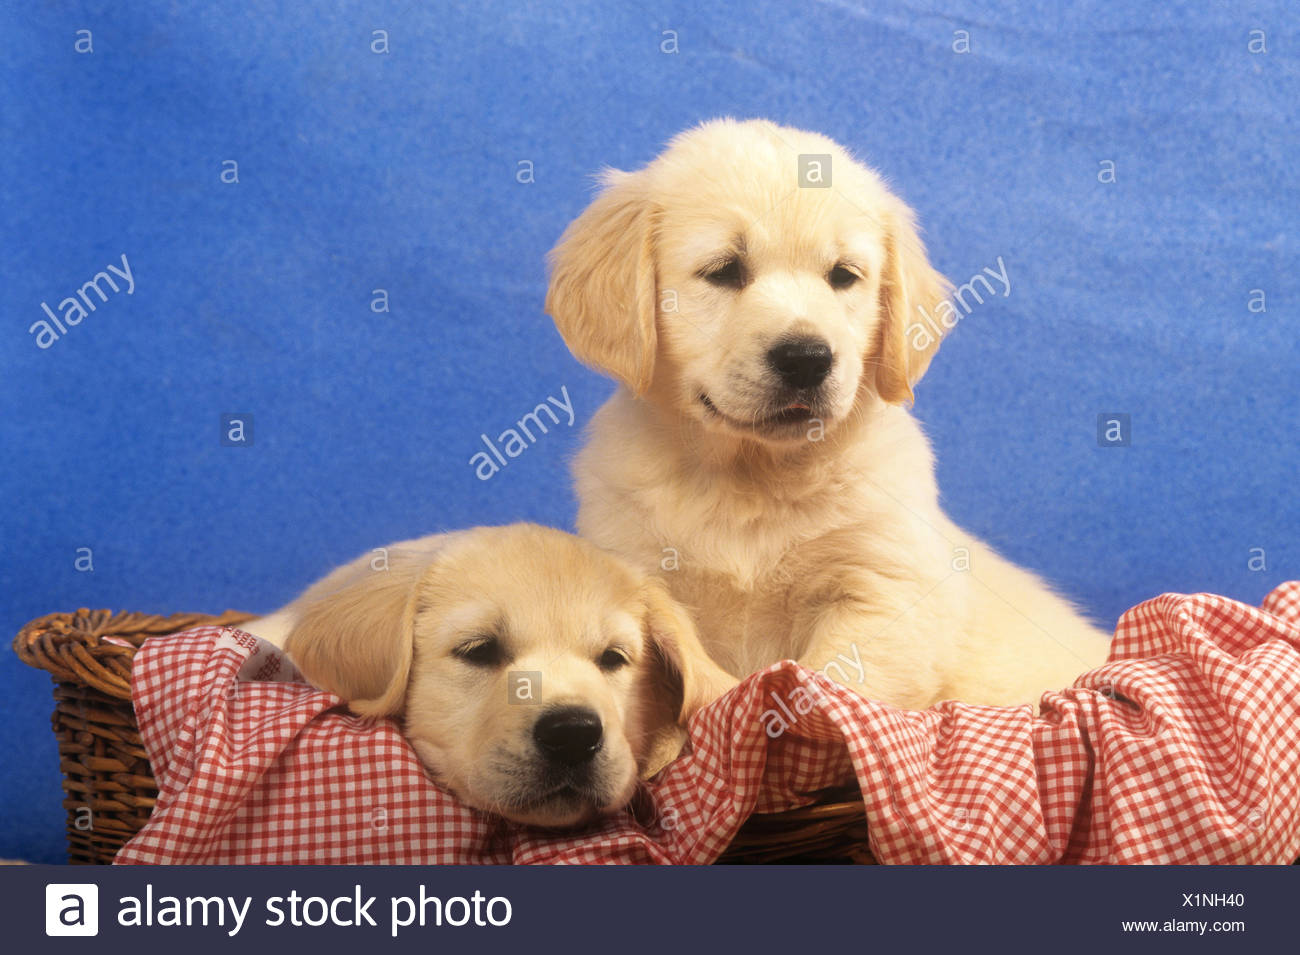 Two Golden Retriever Puppies In Basket Stock Photo 276454976 Alamy